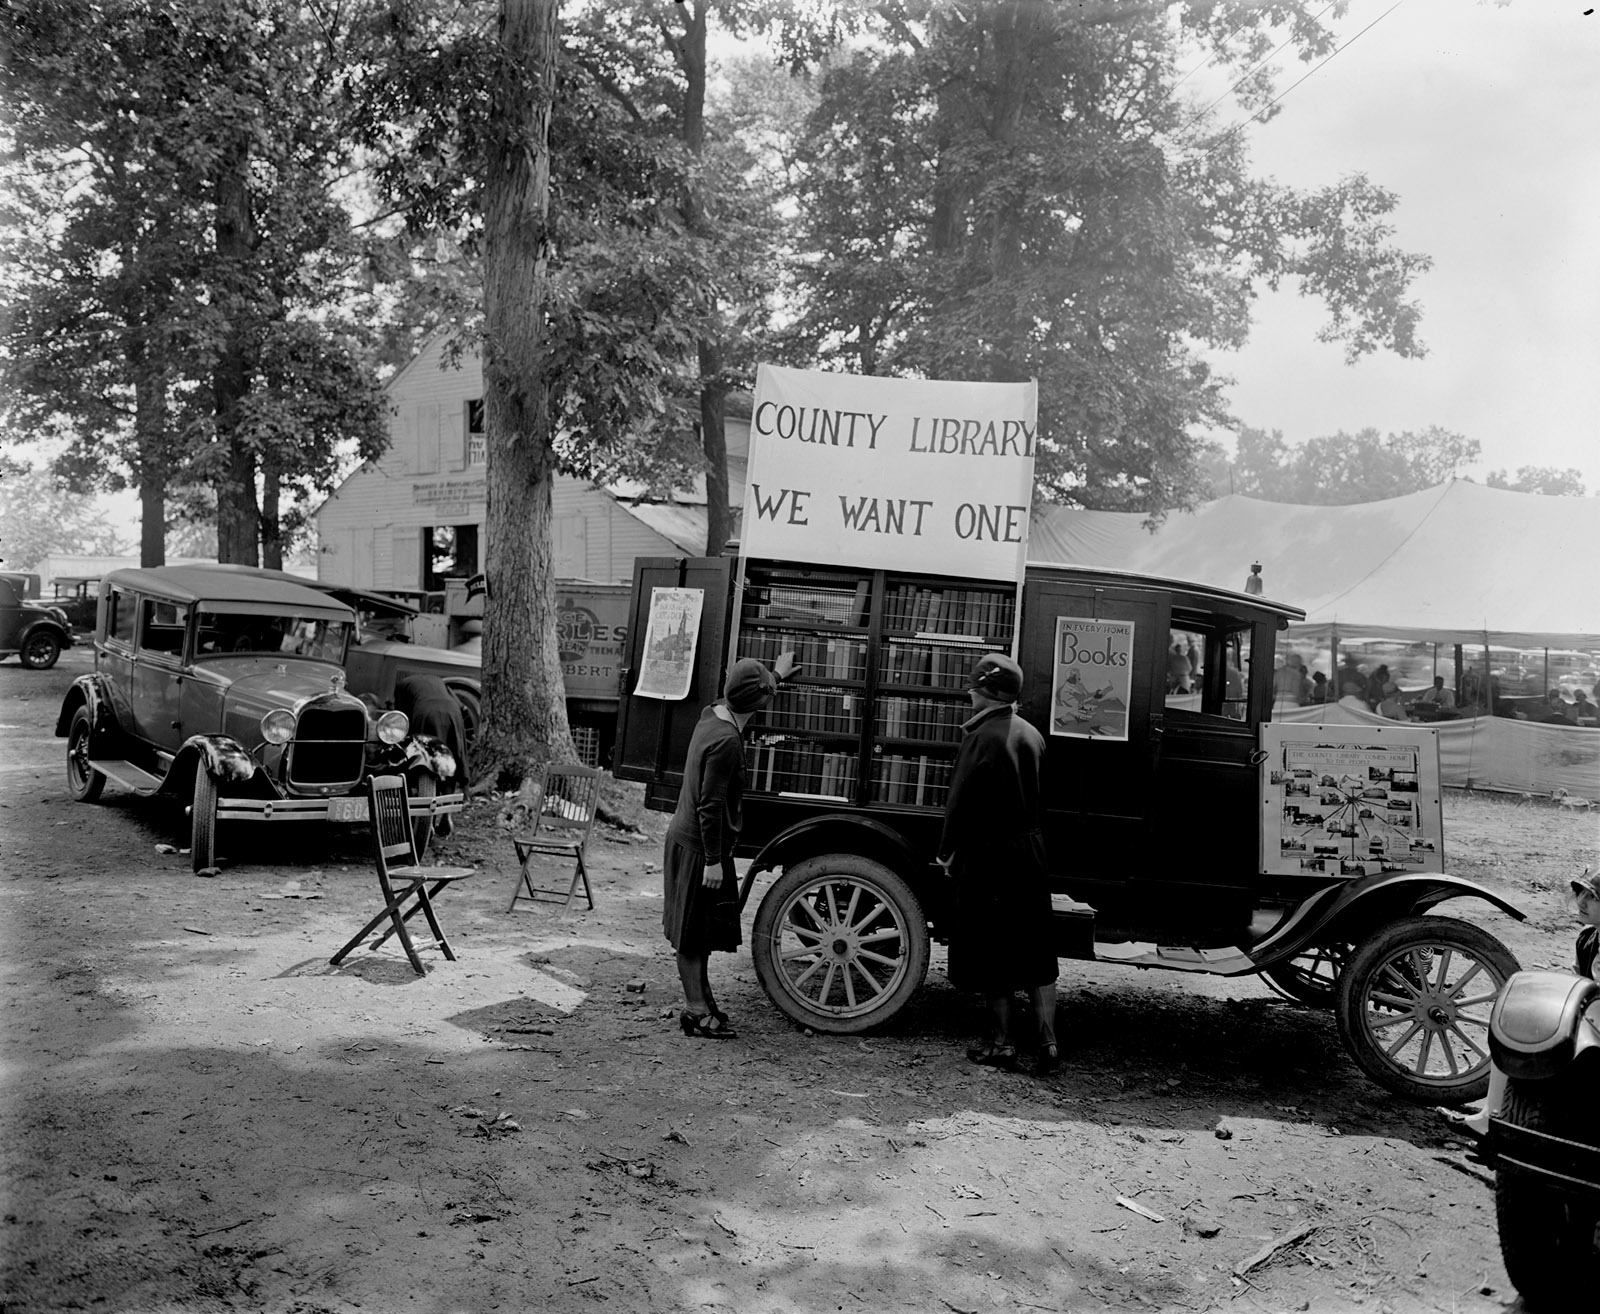 A bookmobile at the Rockville Fair in Maryland, 1928